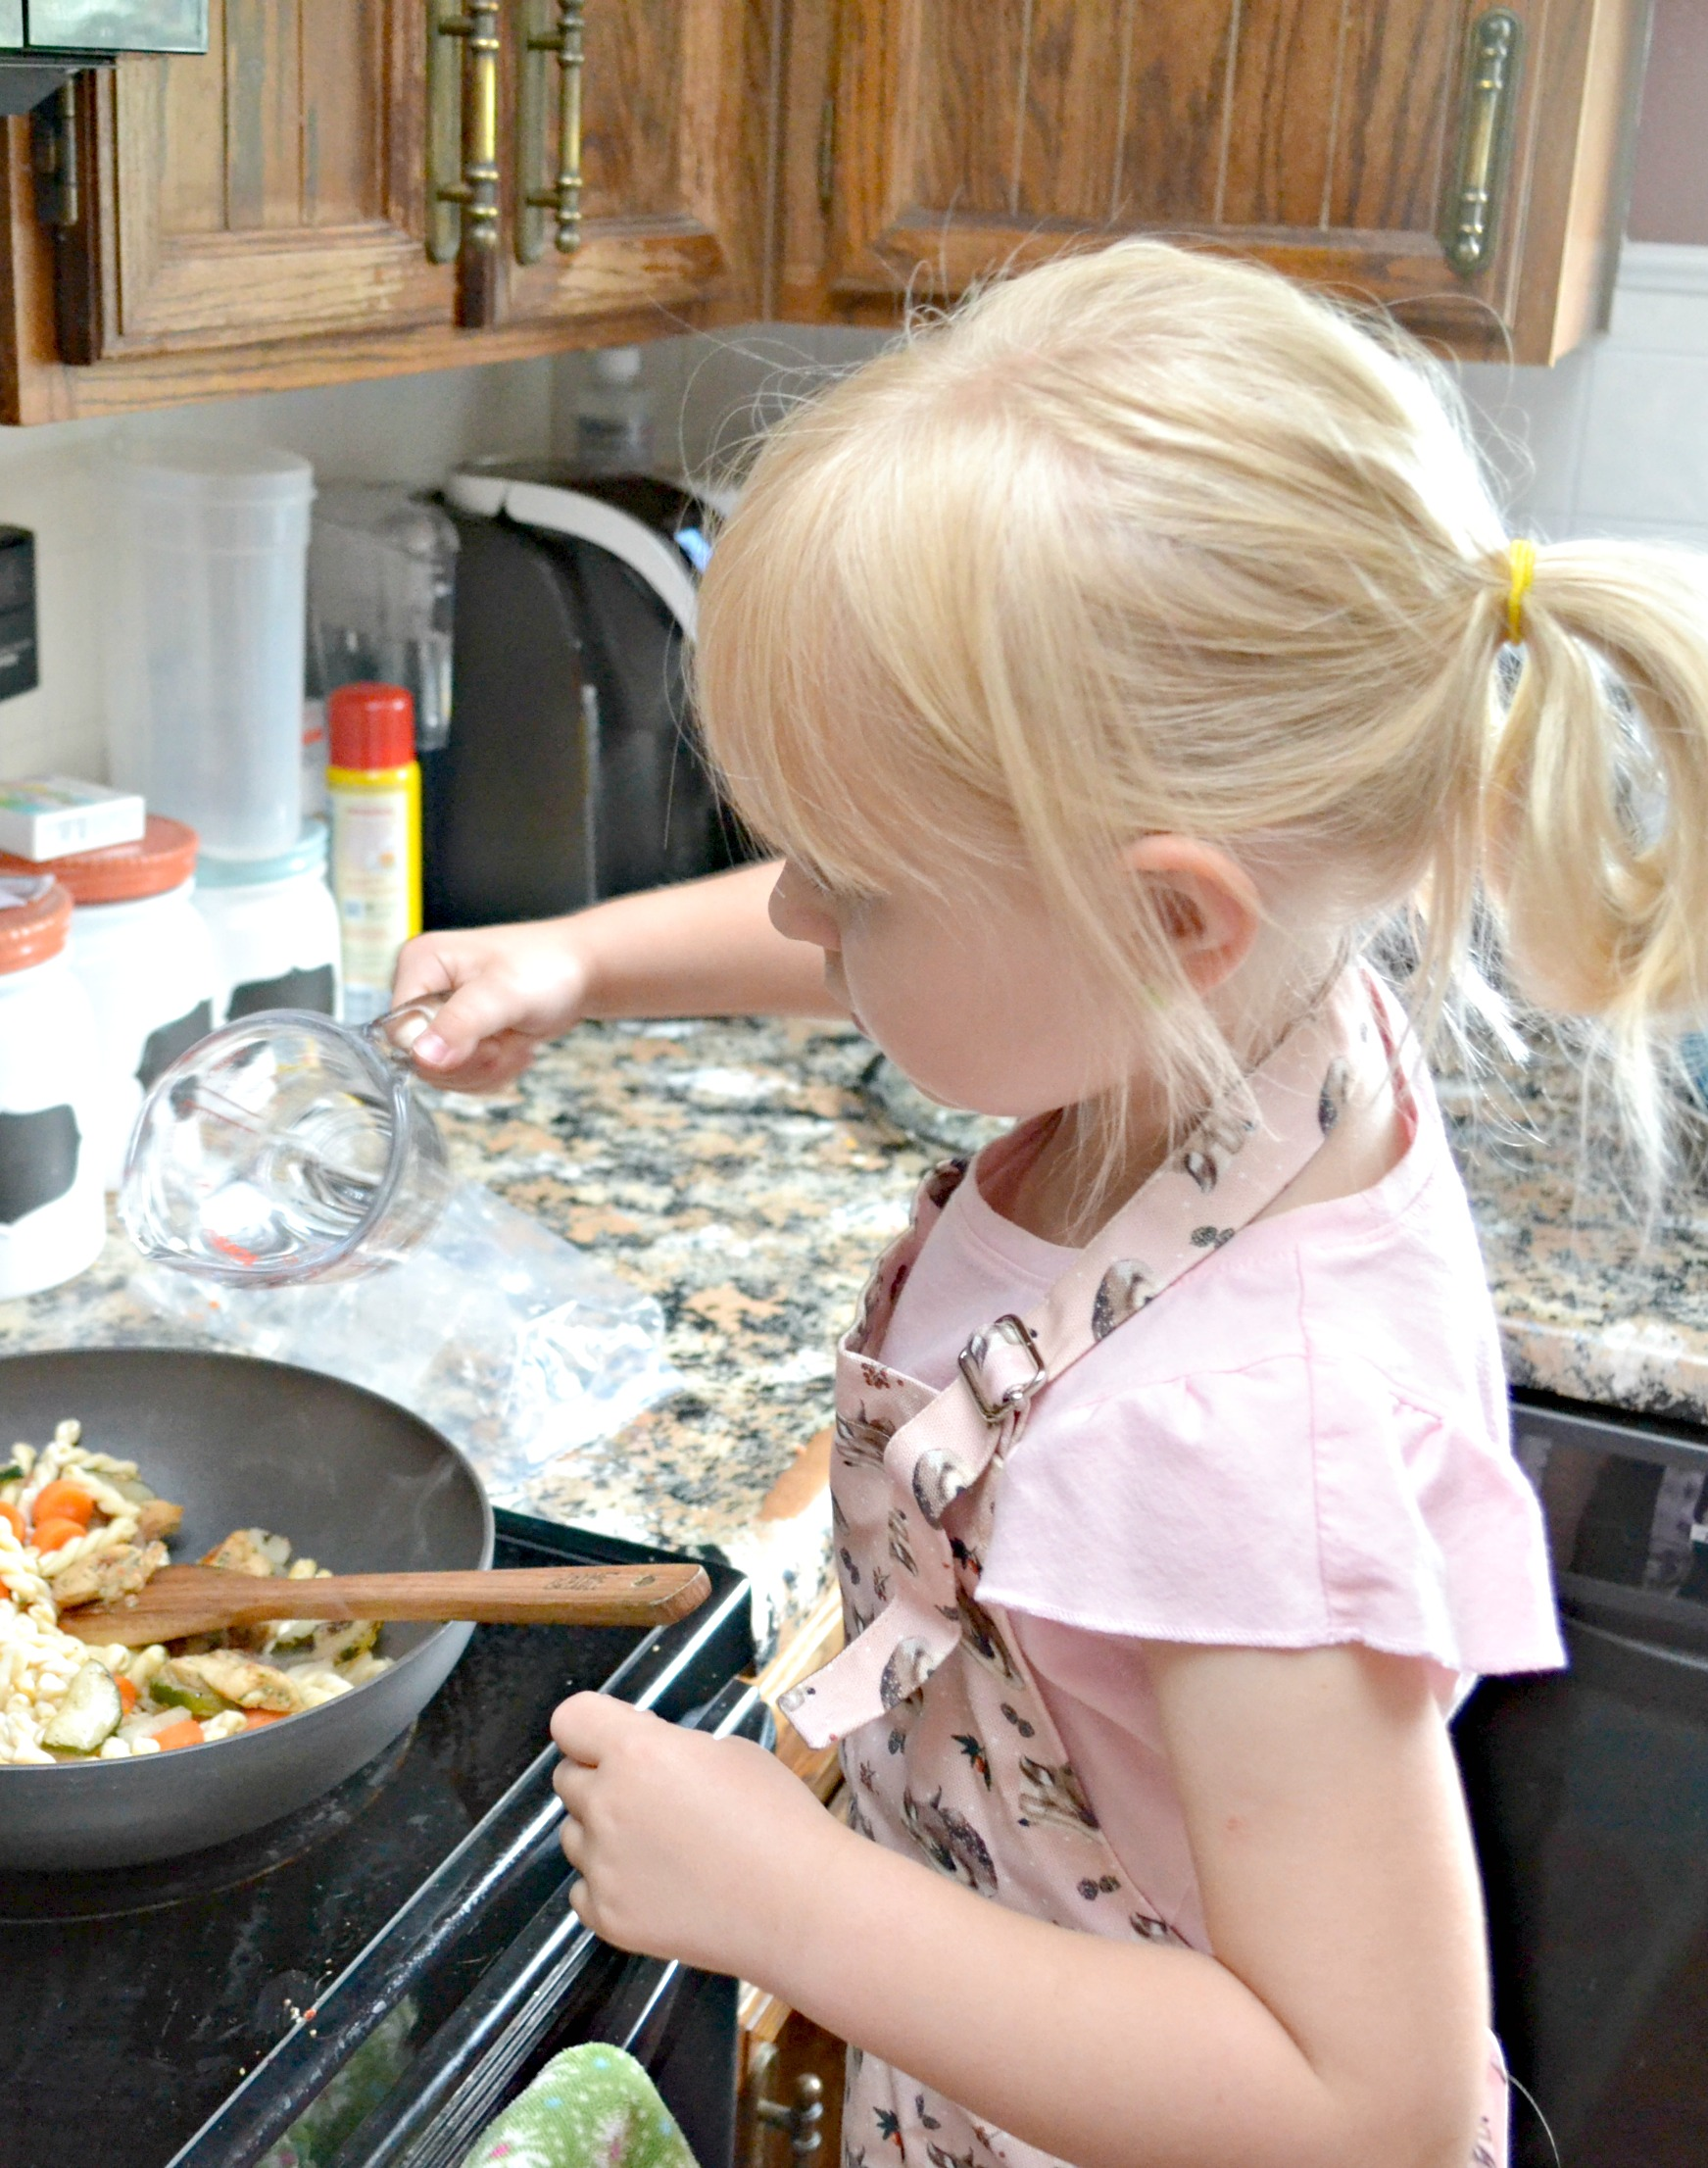 tips on getting kids into the kitchen, cooking with kids, making memories while making dinner, how to cook with kids, easy dinner ideas, Tyson Frozen Meal kits, easy dinner recipes, easy recipes, easy family meals